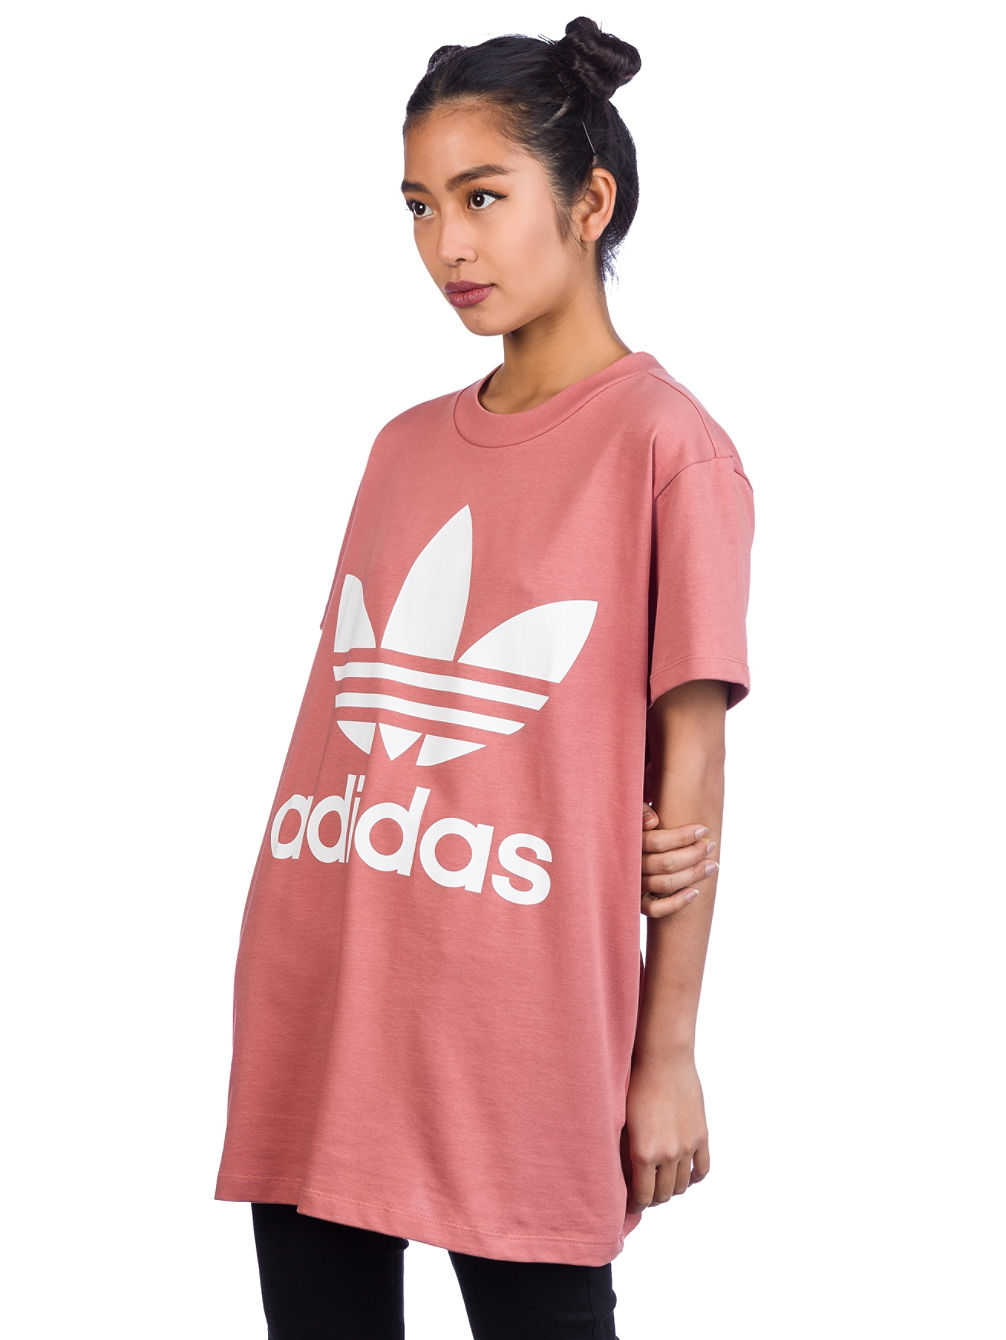 cda9661f3df2 Buy adidas Originals Big Trefoil T-Shirt online at Blue Tomato